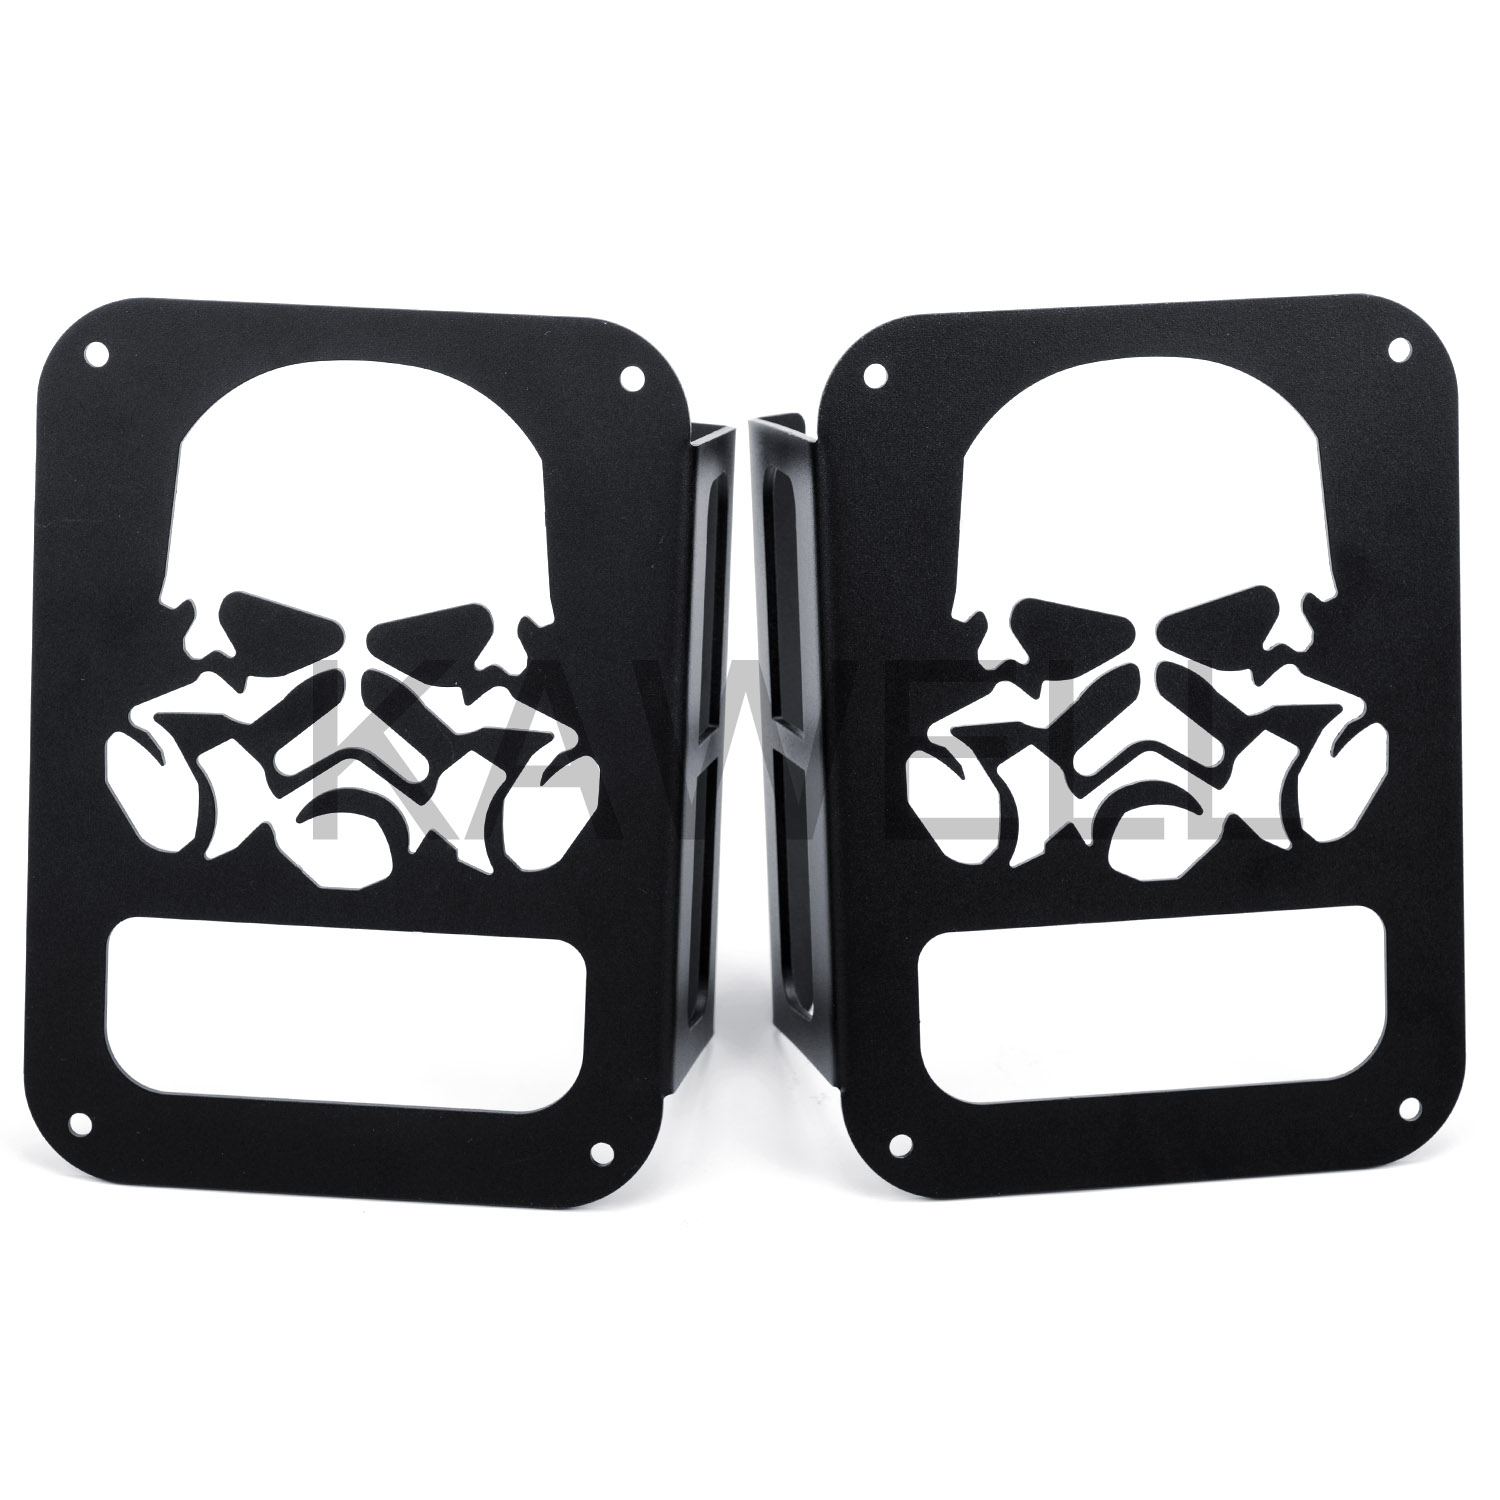 JEEP WRANGLER JK GAS MASK TAIL LIGHT COVERS FOR SALE NEW